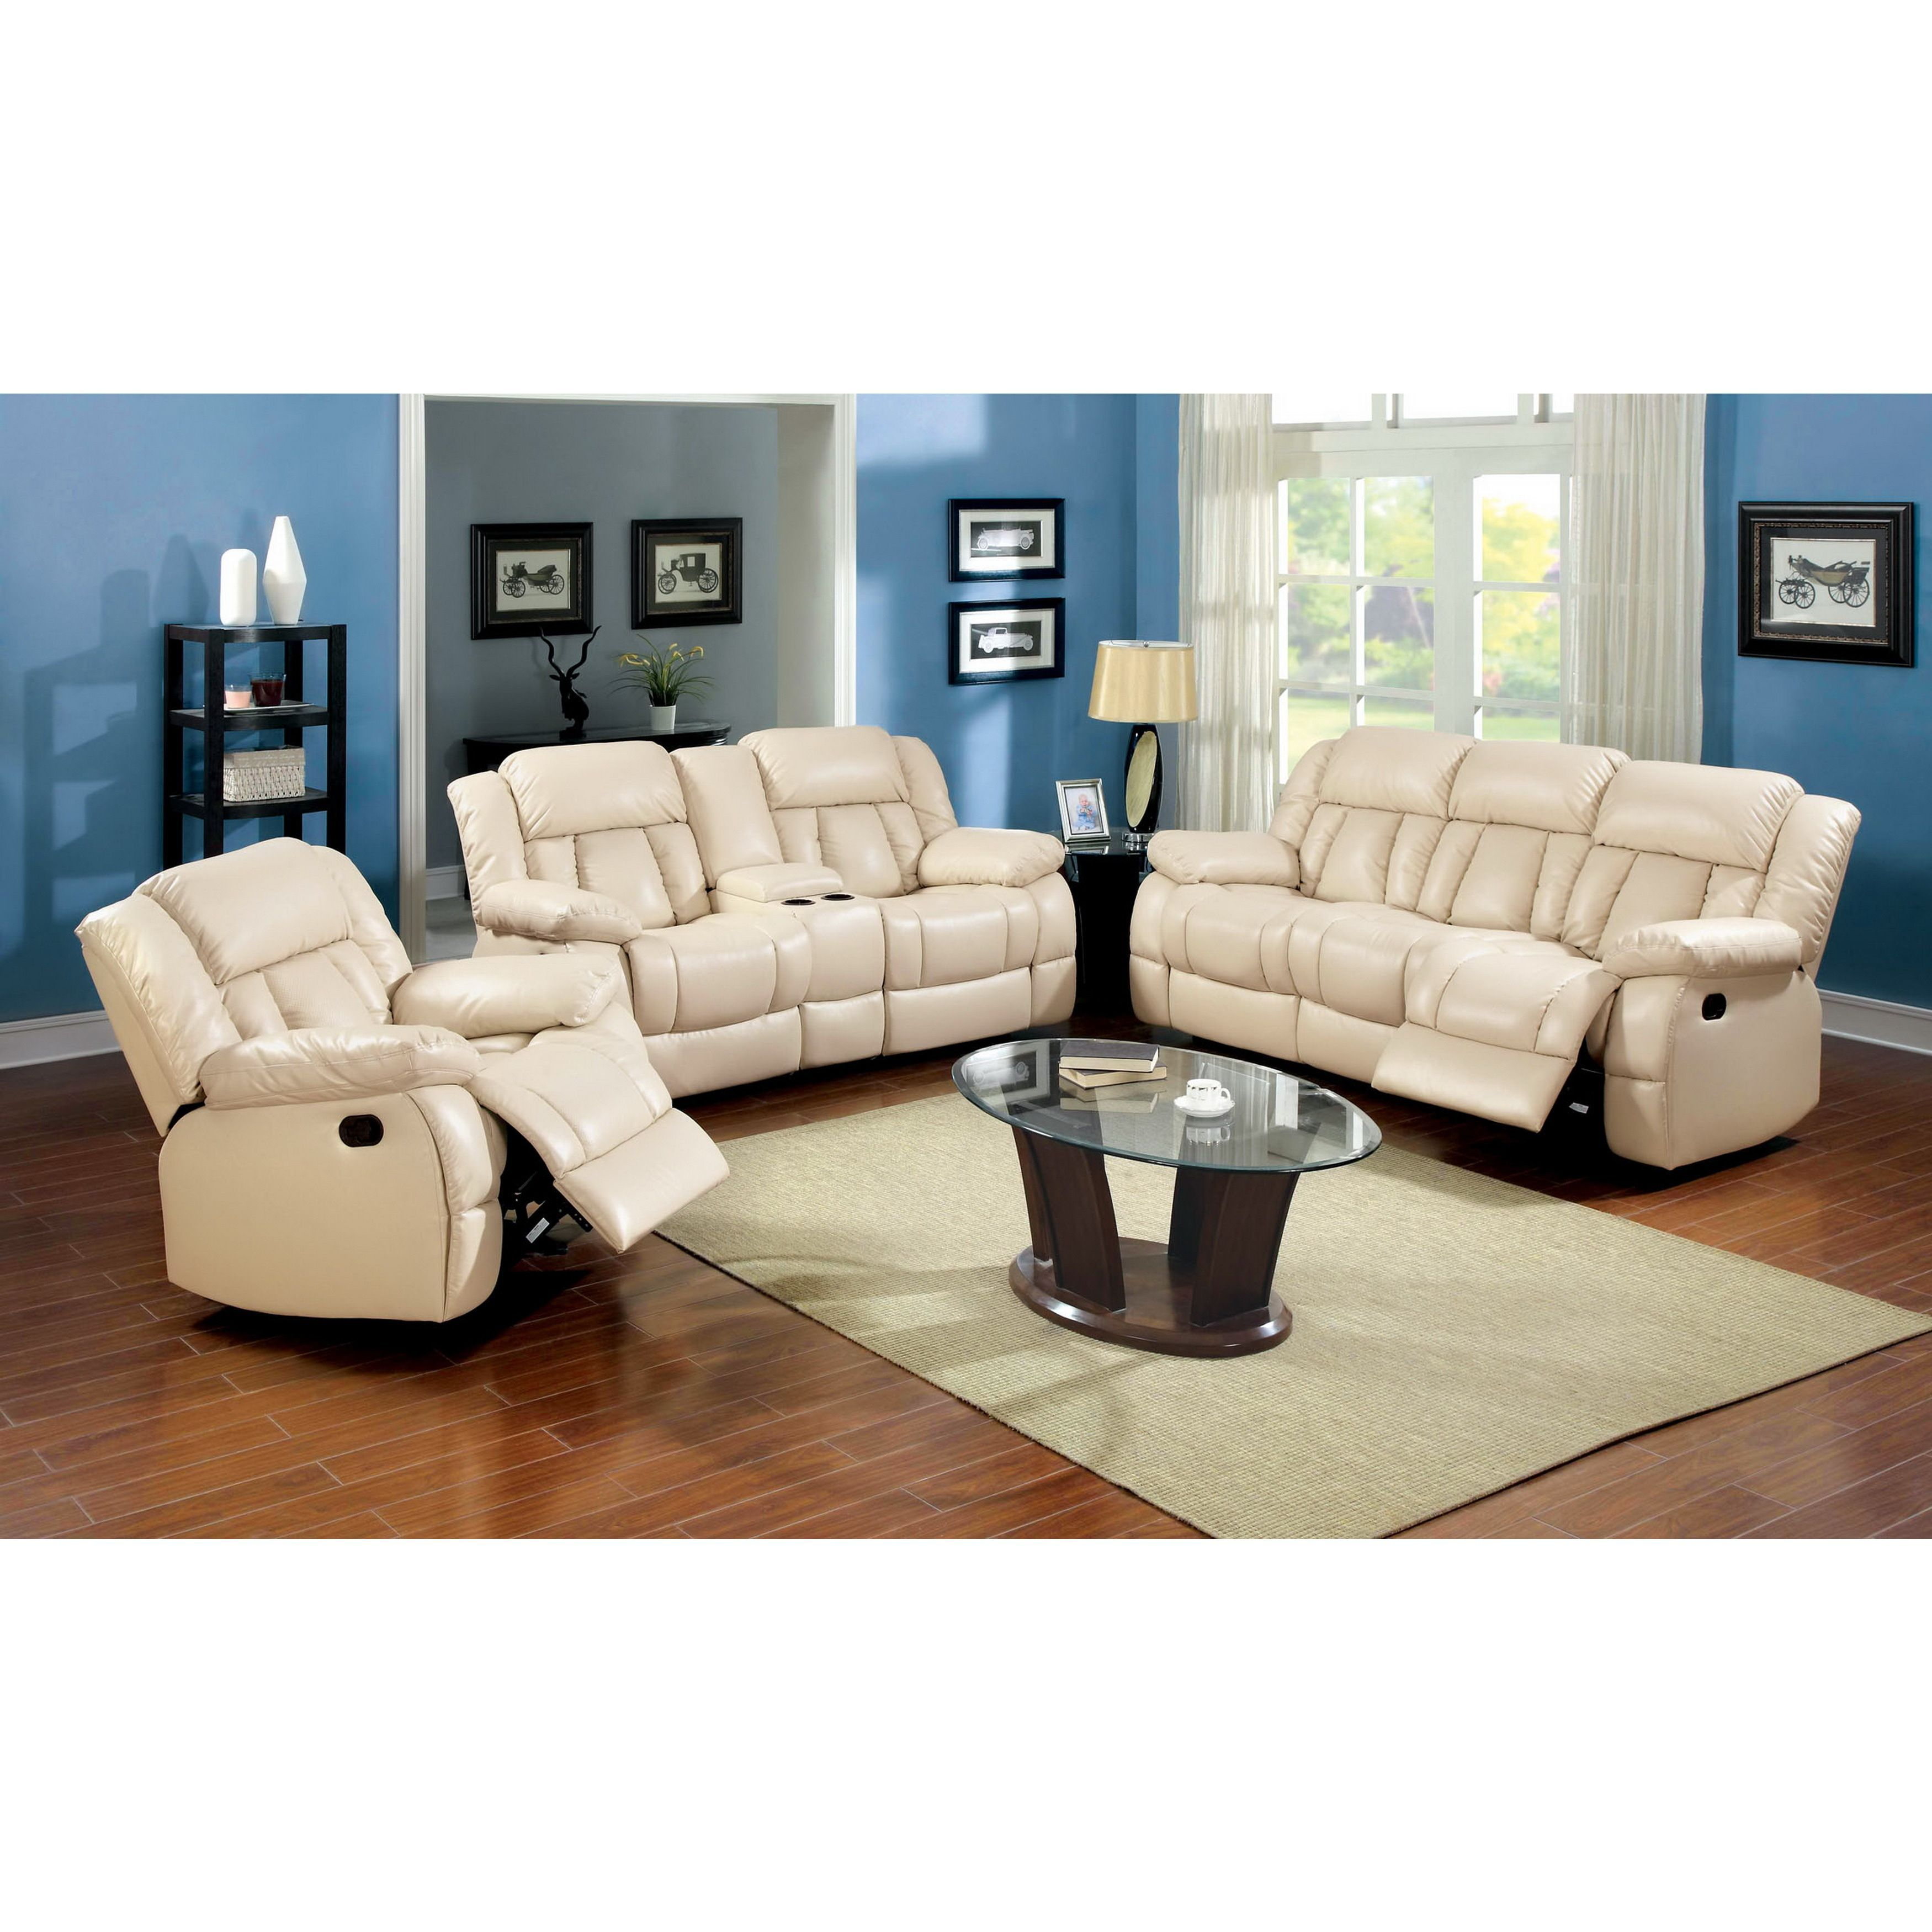 Marvelous Furniture Of America Barbz 2 Piece Bonded Leather Recliner Unemploymentrelief Wooden Chair Designs For Living Room Unemploymentrelieforg